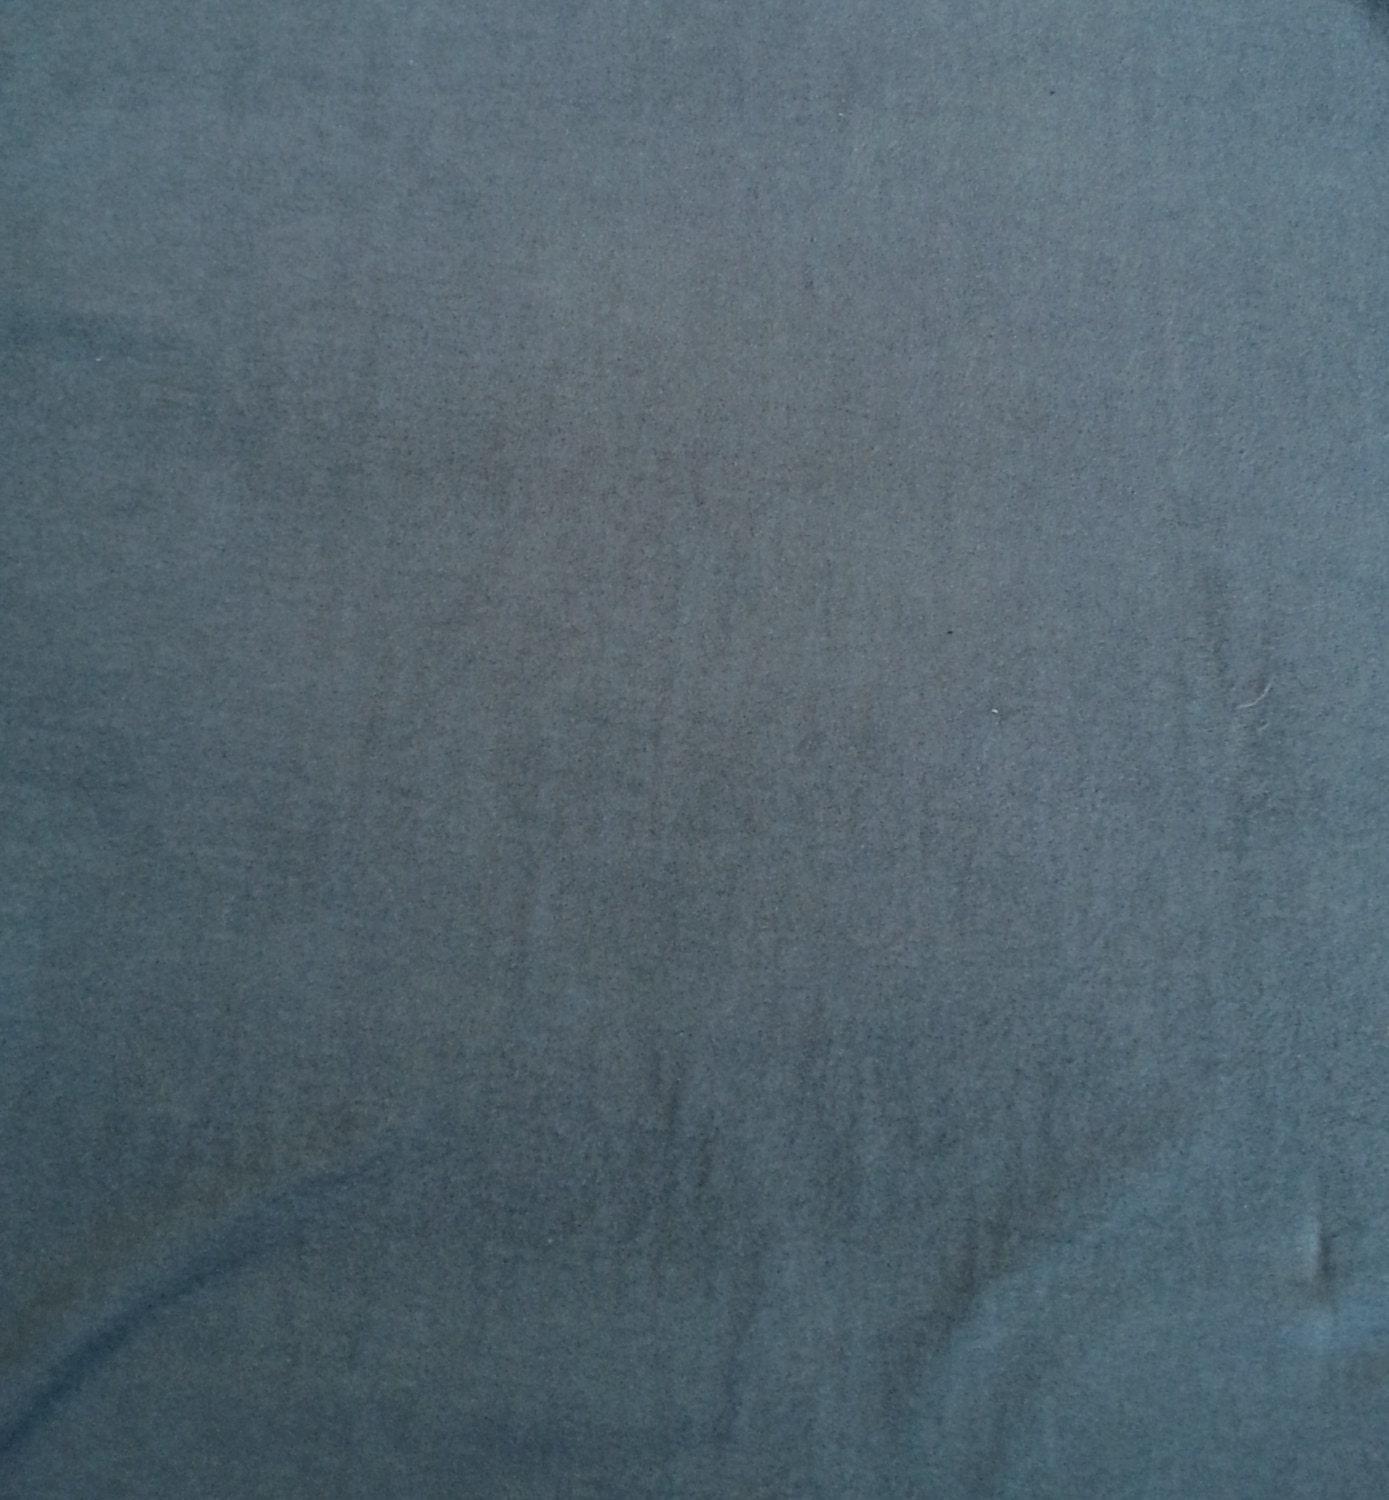 cotton fleece fabric by the yard charcoal gray 12 14 by koshtex. Black Bedroom Furniture Sets. Home Design Ideas